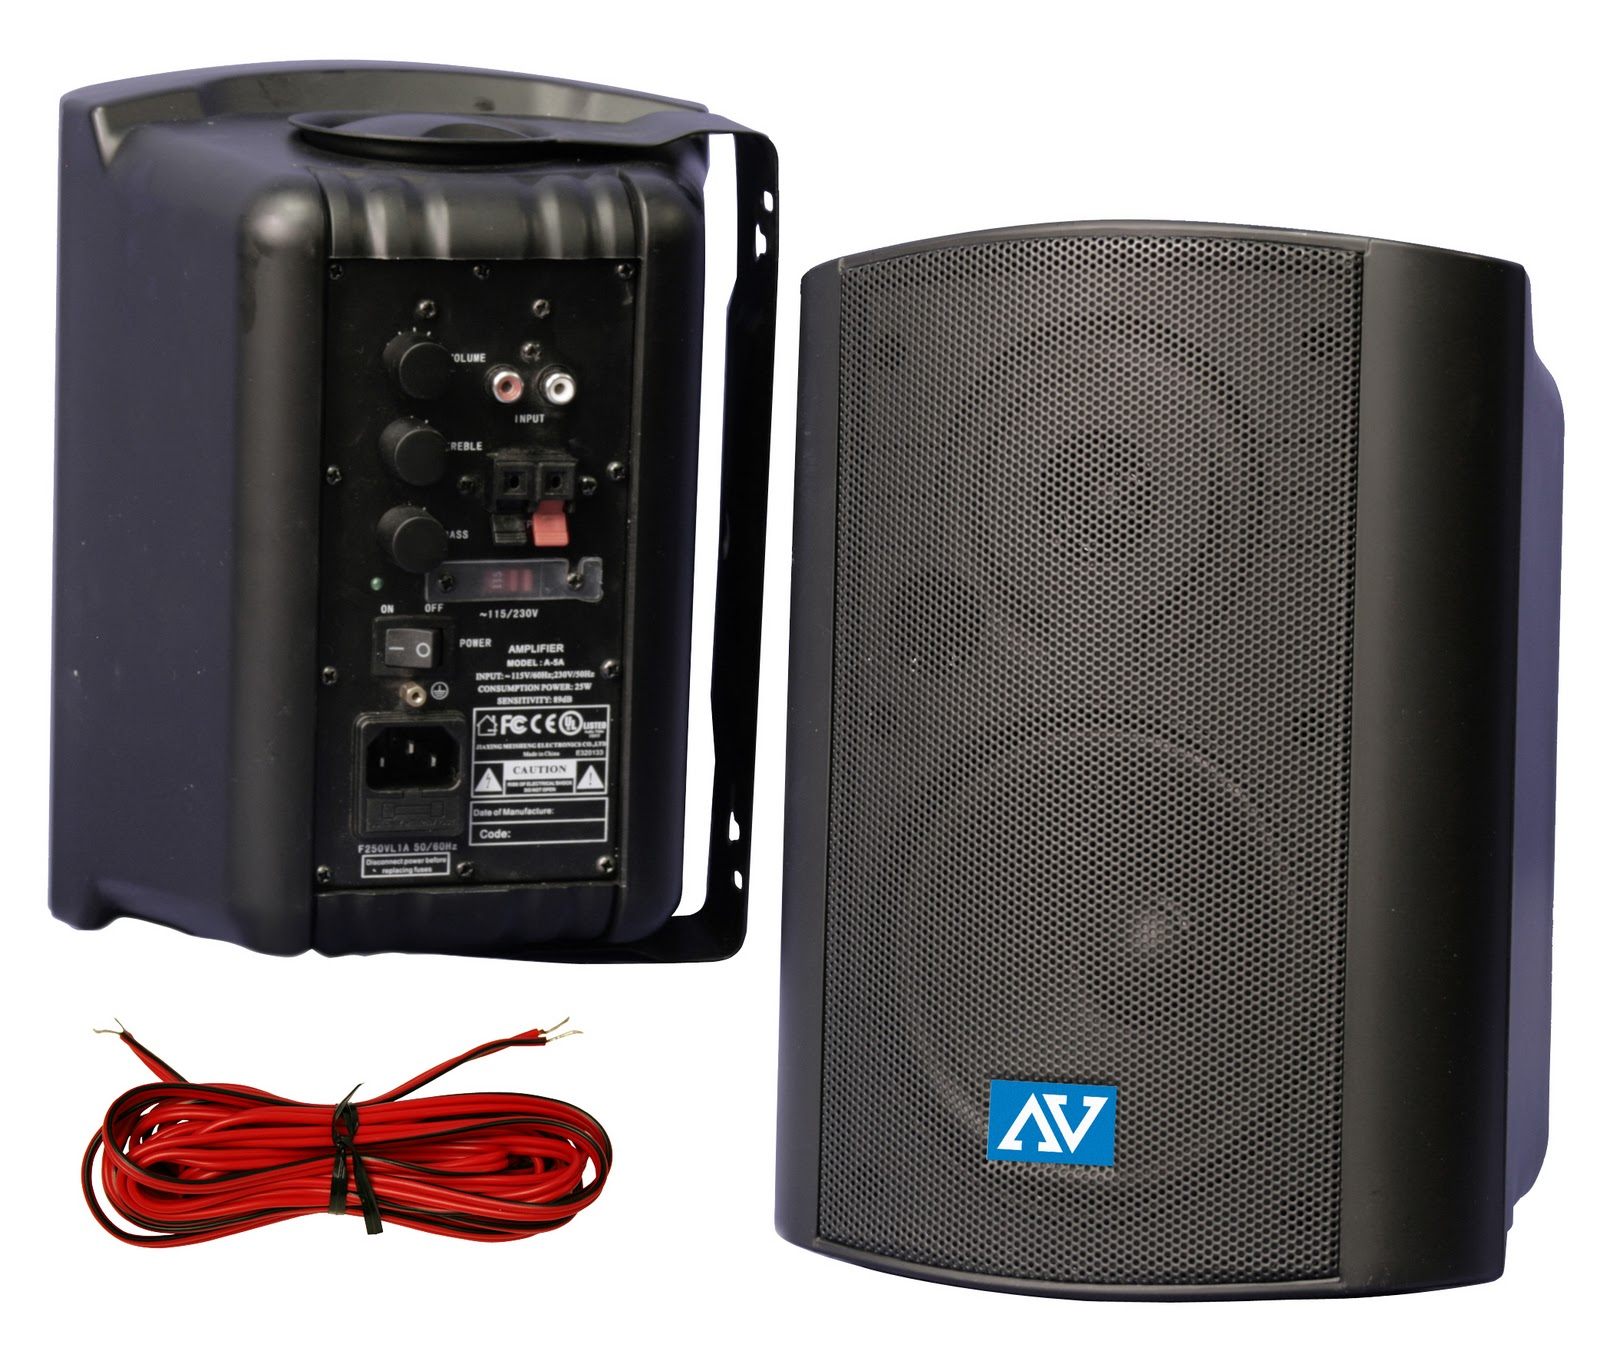 Custom Mountable Horn Speaker Systems Alternative To Paging Project 116 Subwoofer Amp The Amplifier Is Battery Powered Or Can Be Plugged In Using Ac Power For Convenience Surface Mount